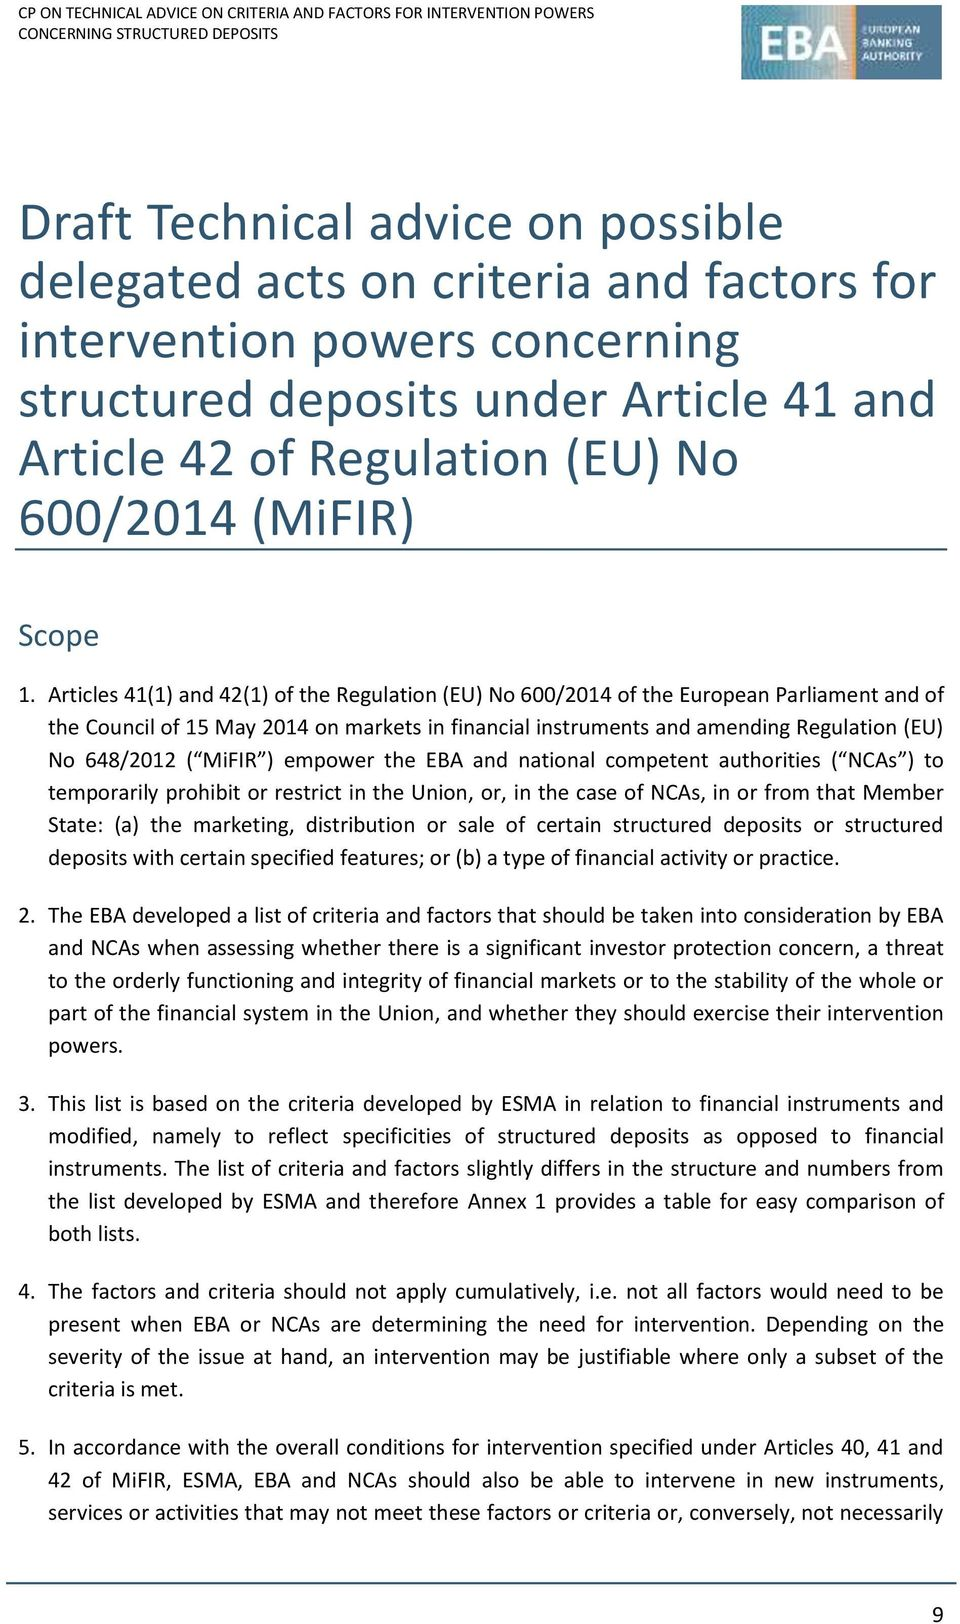 Articles 41(1) and 42(1) of the Regulation (EU) No 600/2014 of the European Parliament and of the Council of 15 May 2014 on markets in financial instruments and amending Regulation (EU) No 648/2012 (